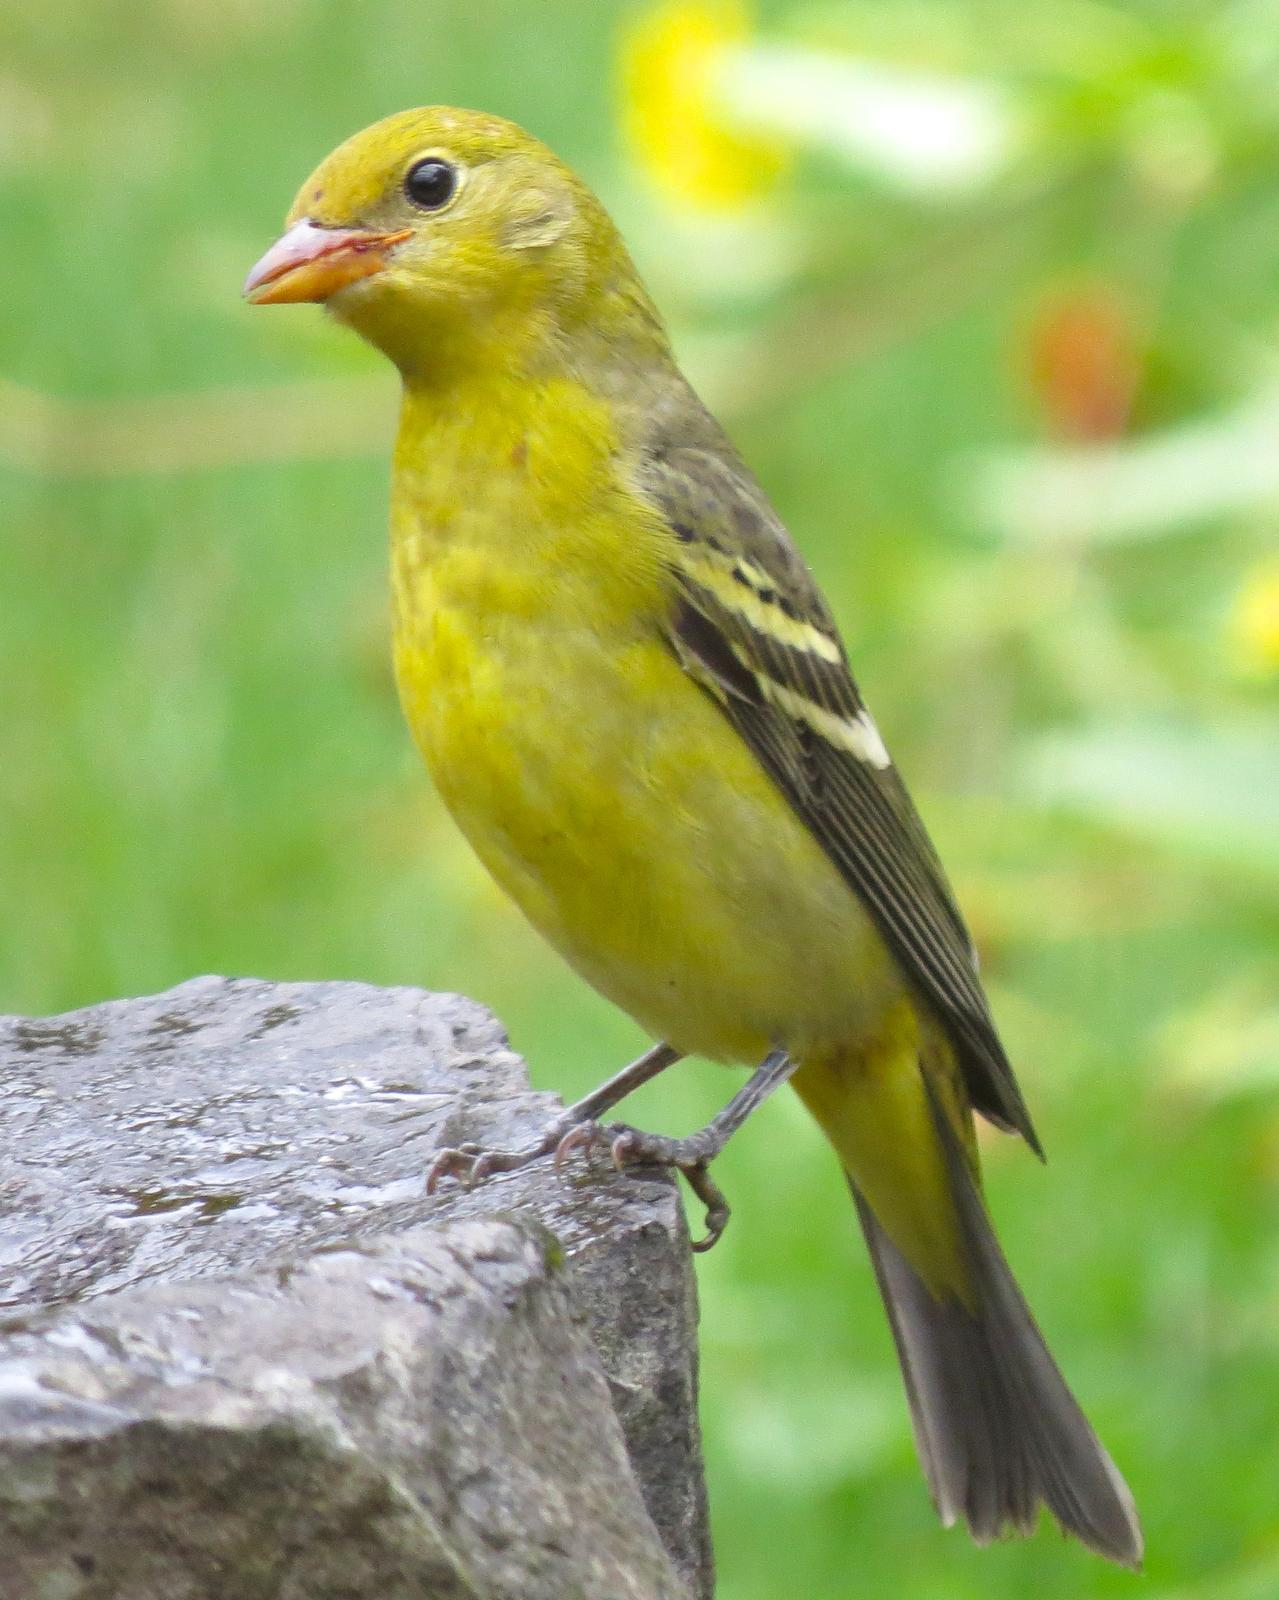 Western Tanager Photo by Robin Barker